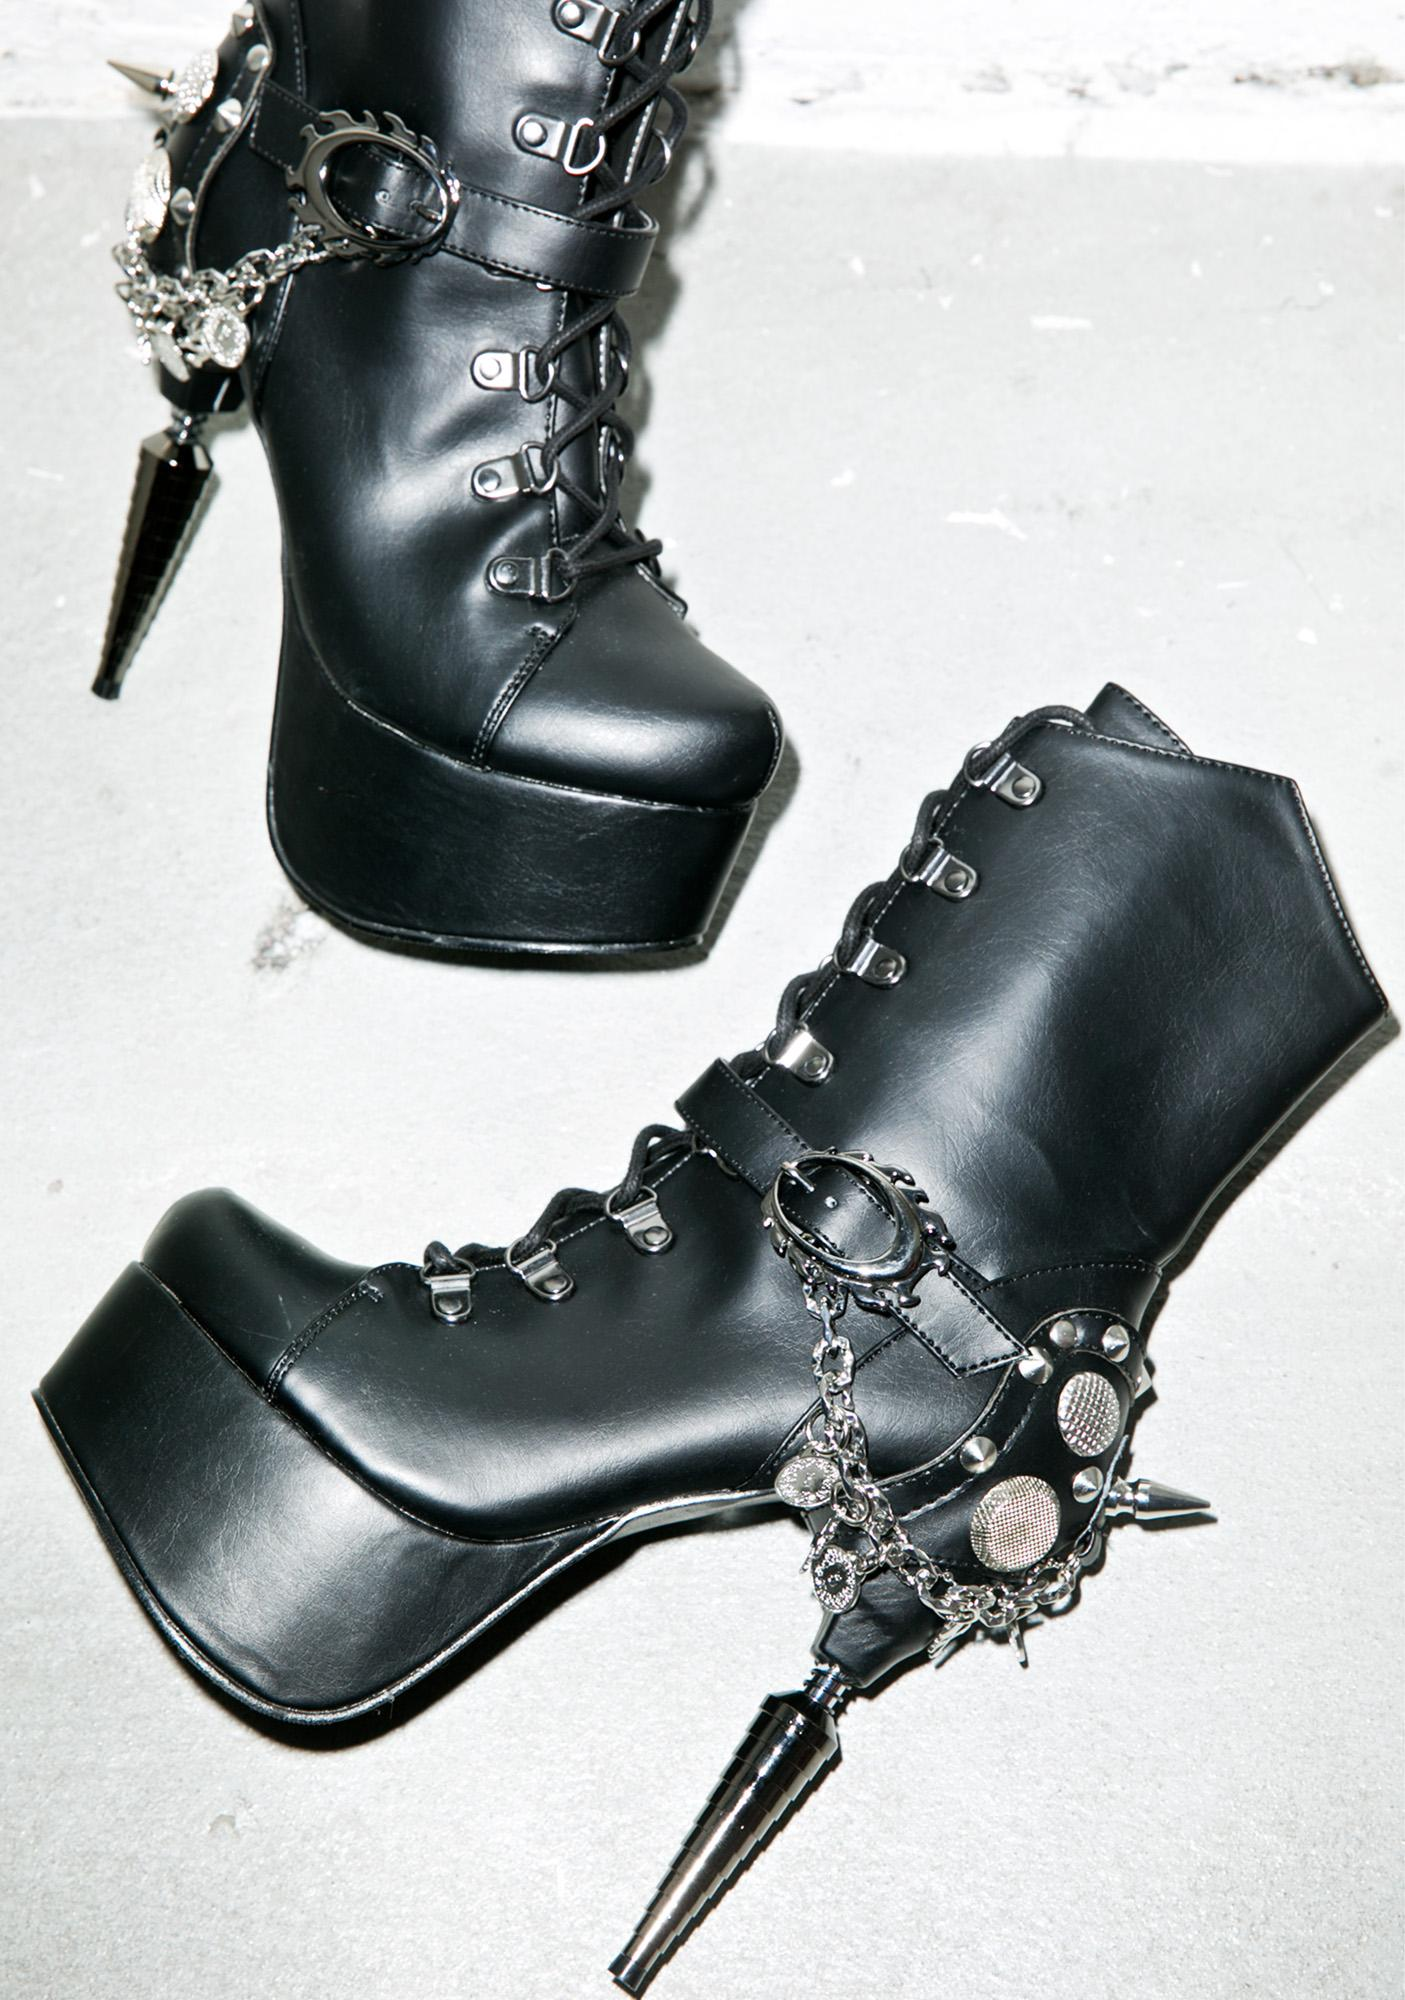 Hades Footwear Envy High Heel Boots